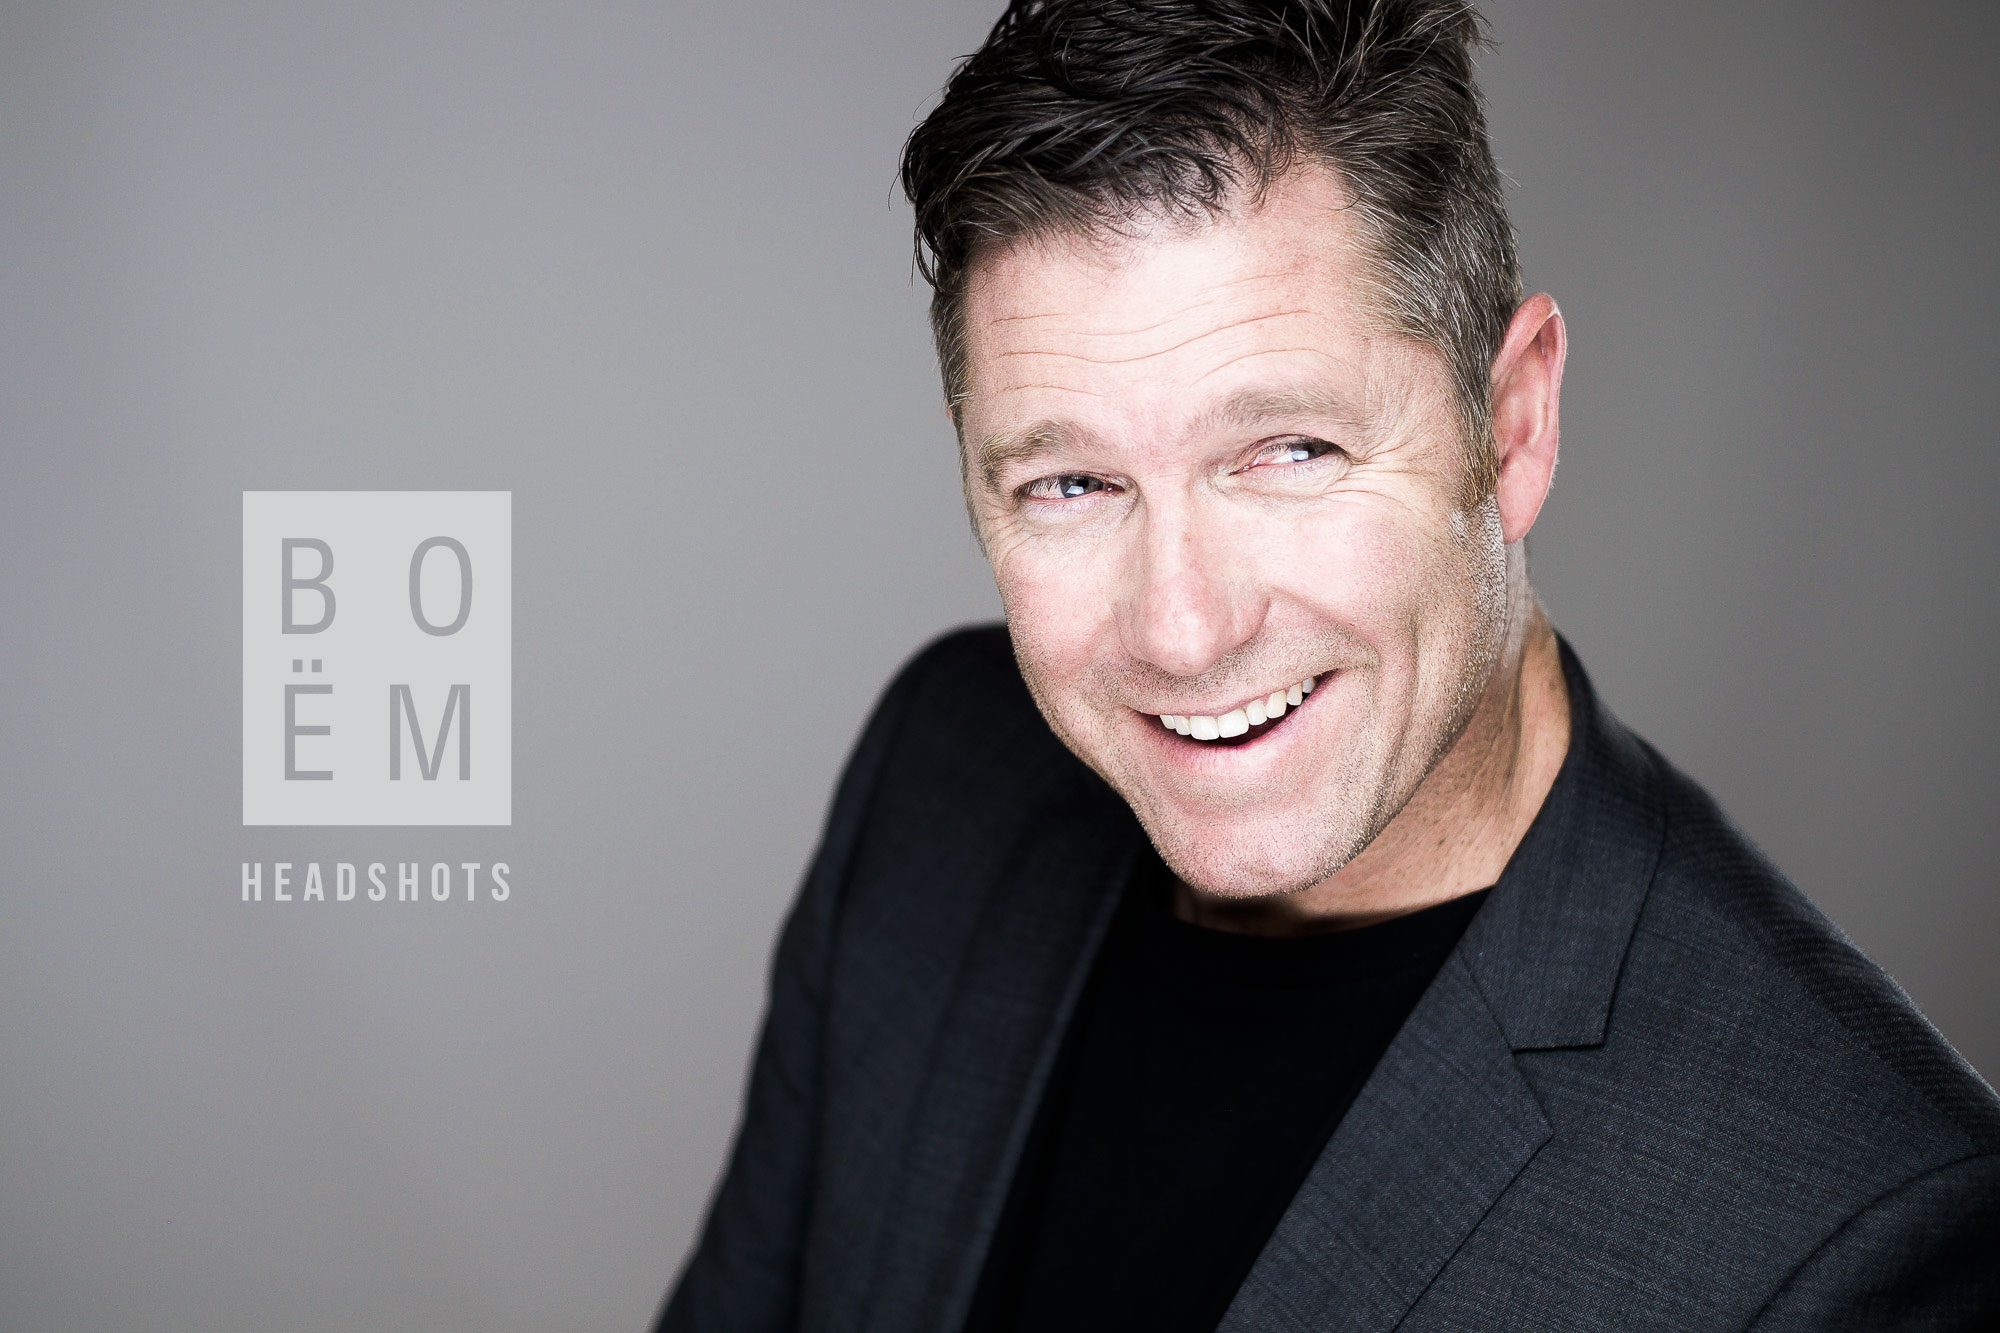 A professional headshot and executive portrait session for Scott, a serial entrepreneur and speaker here in Adelaide by andre Goosen for boem headshots, the premier headshot photographer